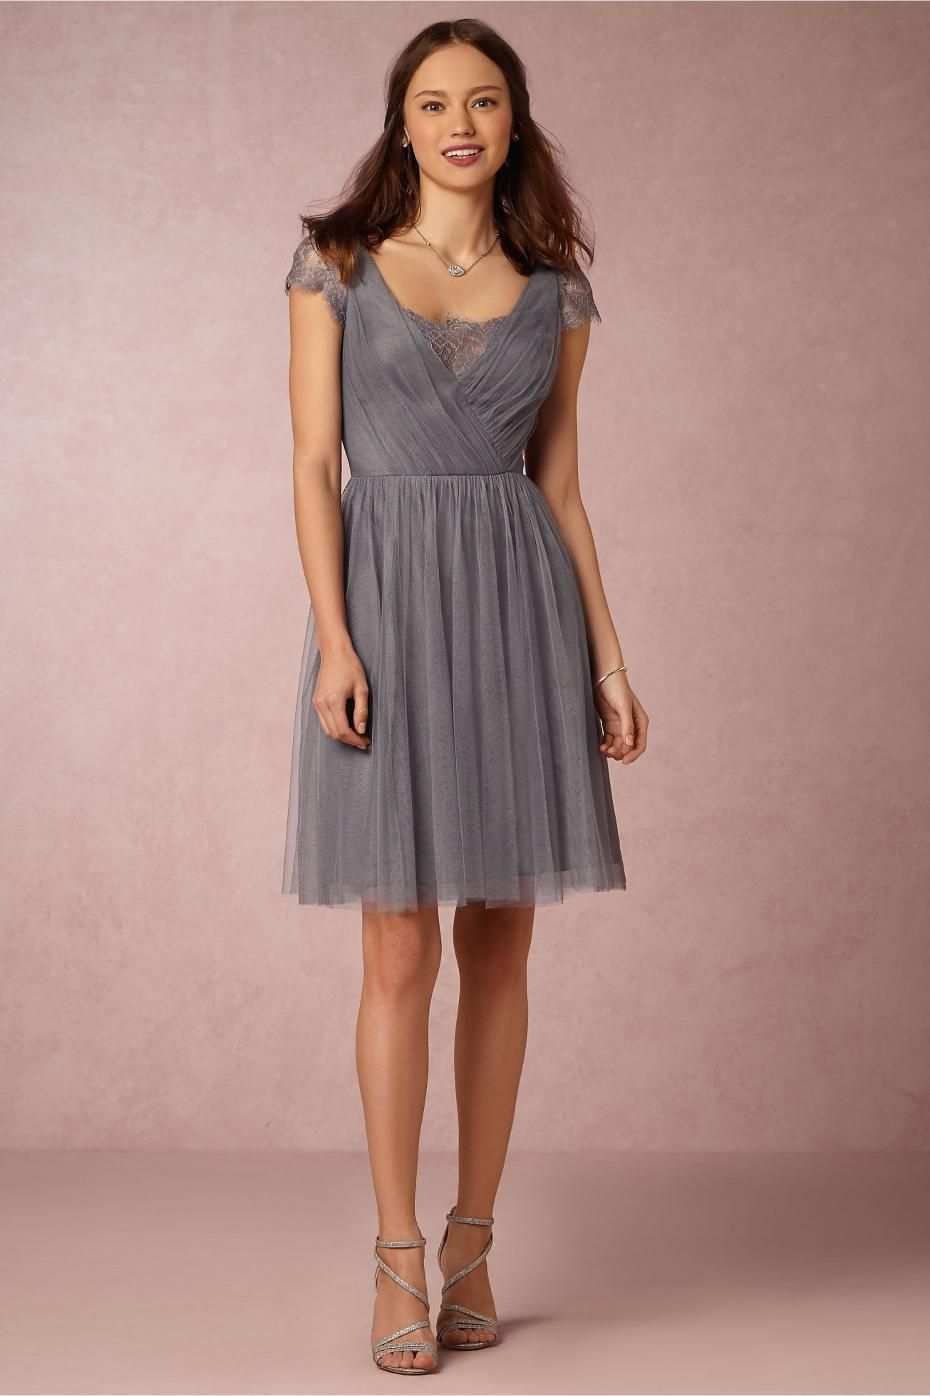 Tea length grey bridesmaid dresses grey bridesmaid dress tea length grey bridesmaid dresses ombrellifo Image collections